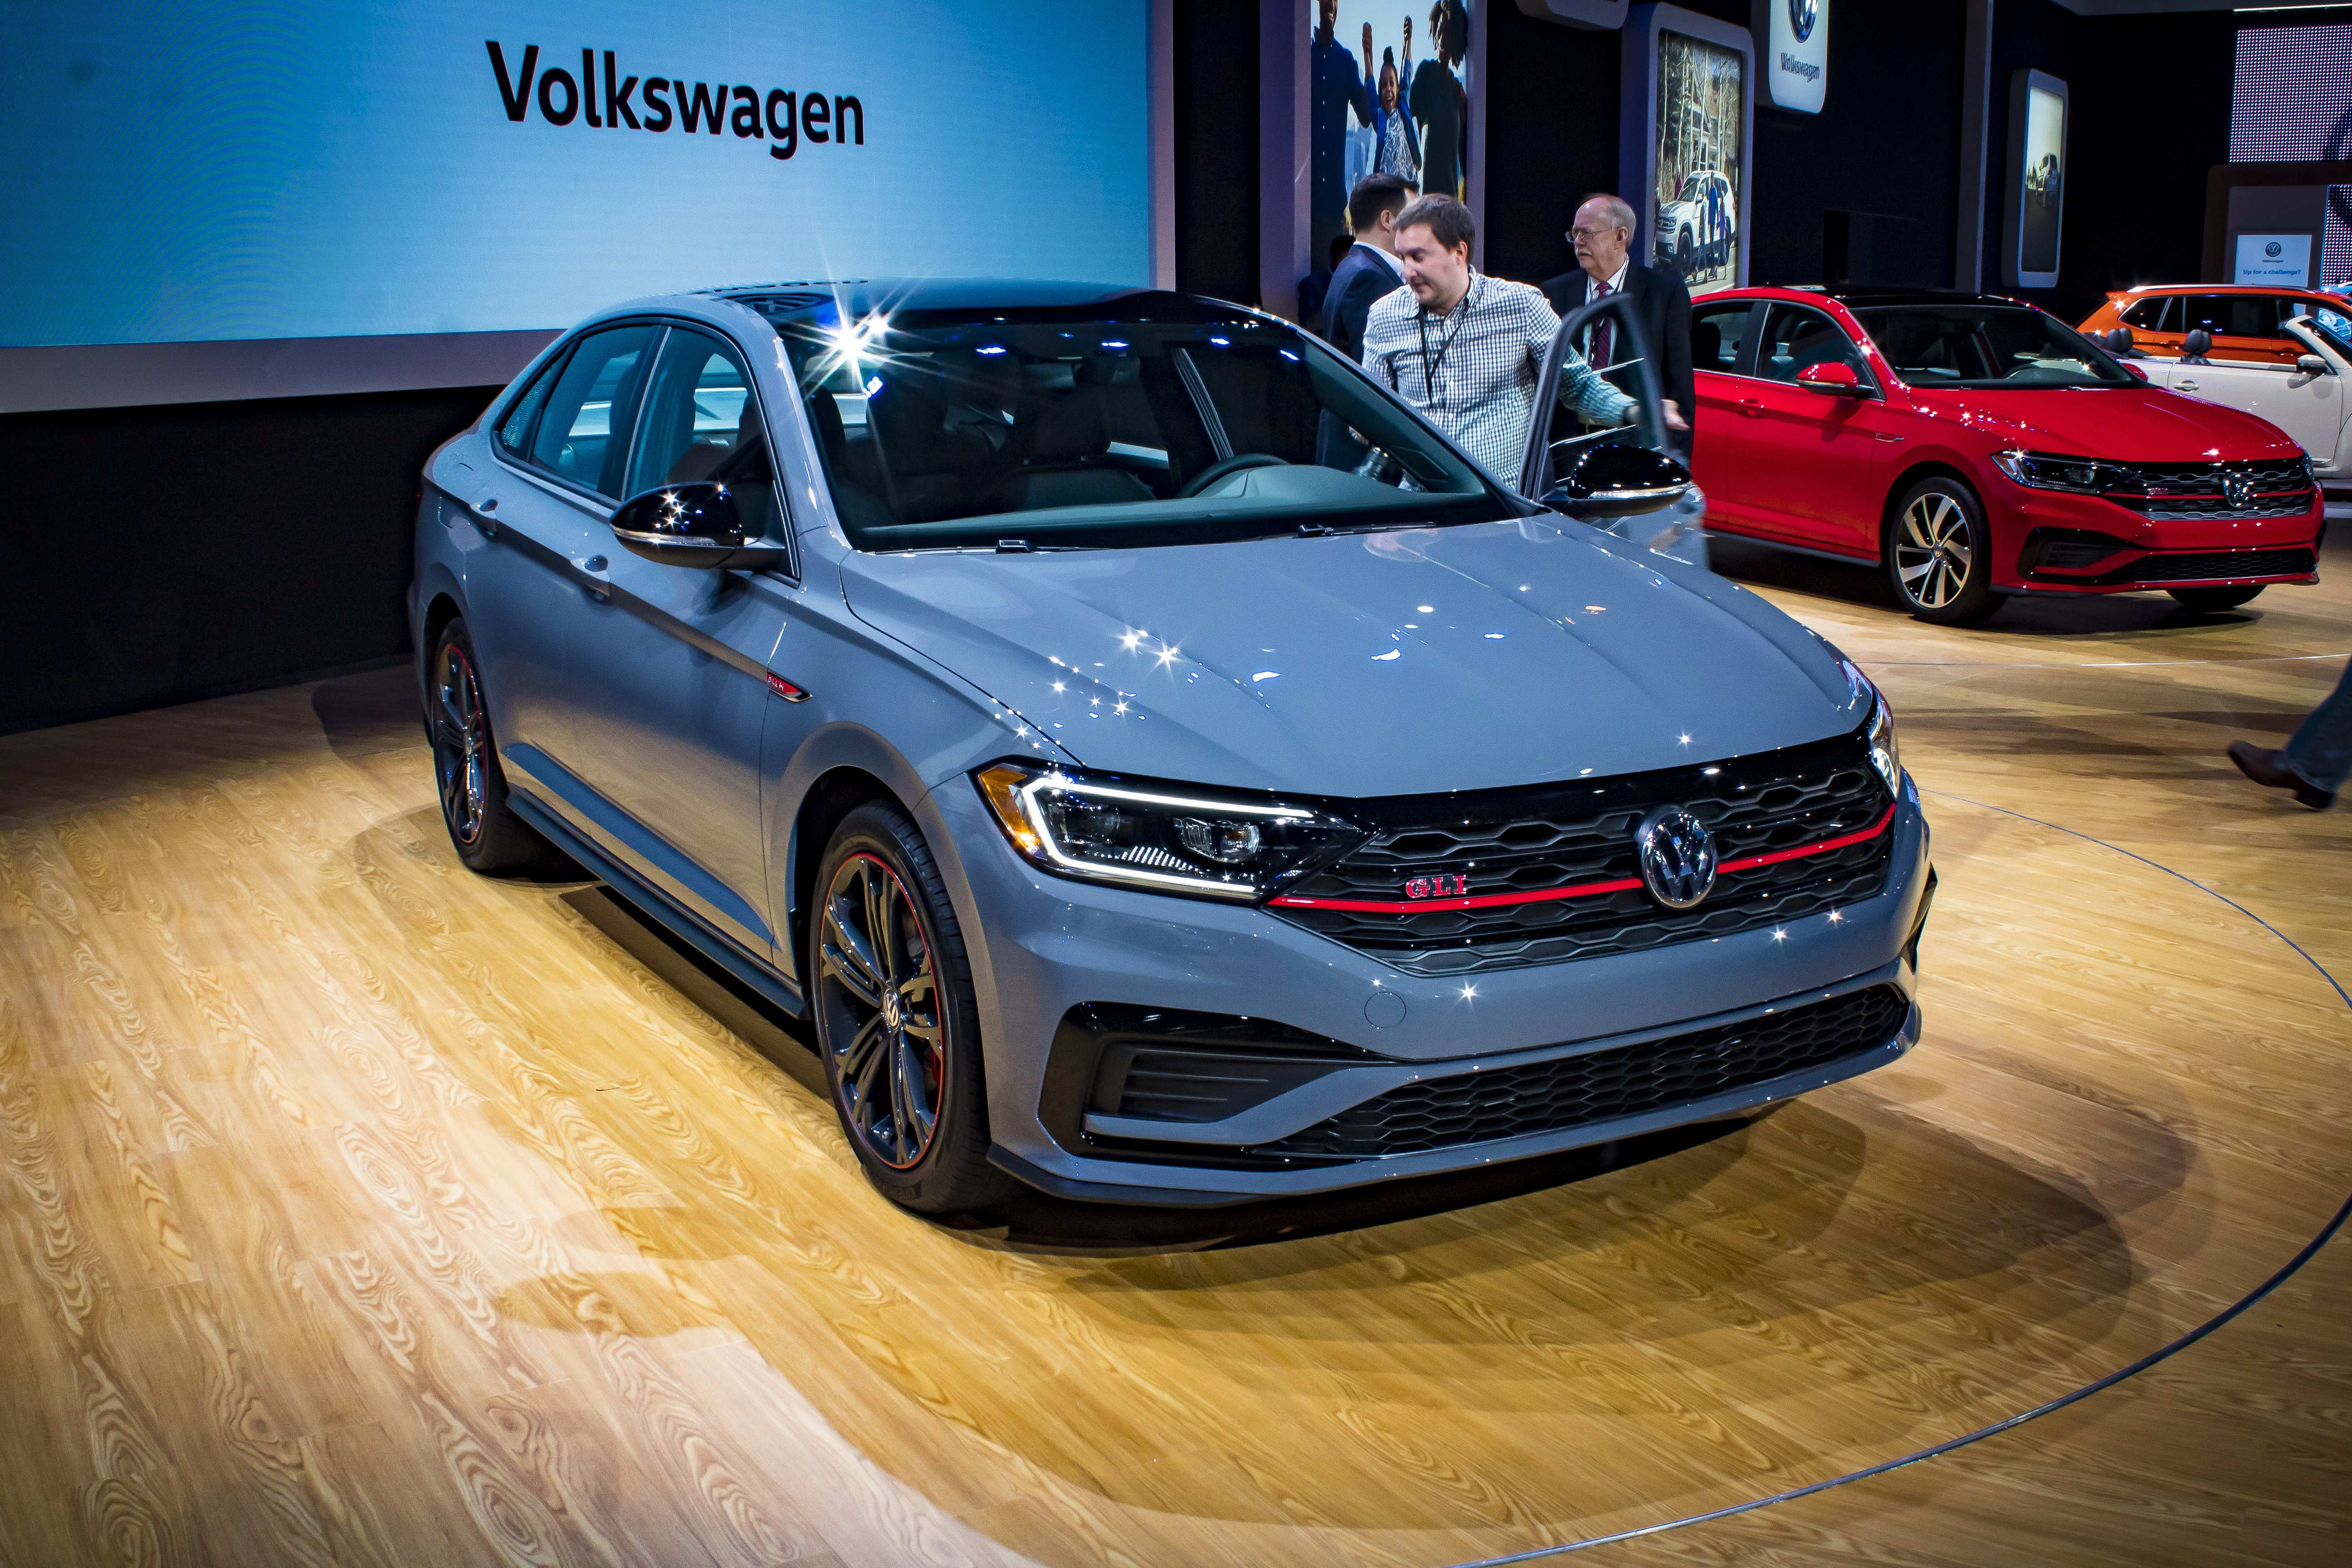 93 The Volkswagen Jetta Gli 2020 Precio Concept And Review